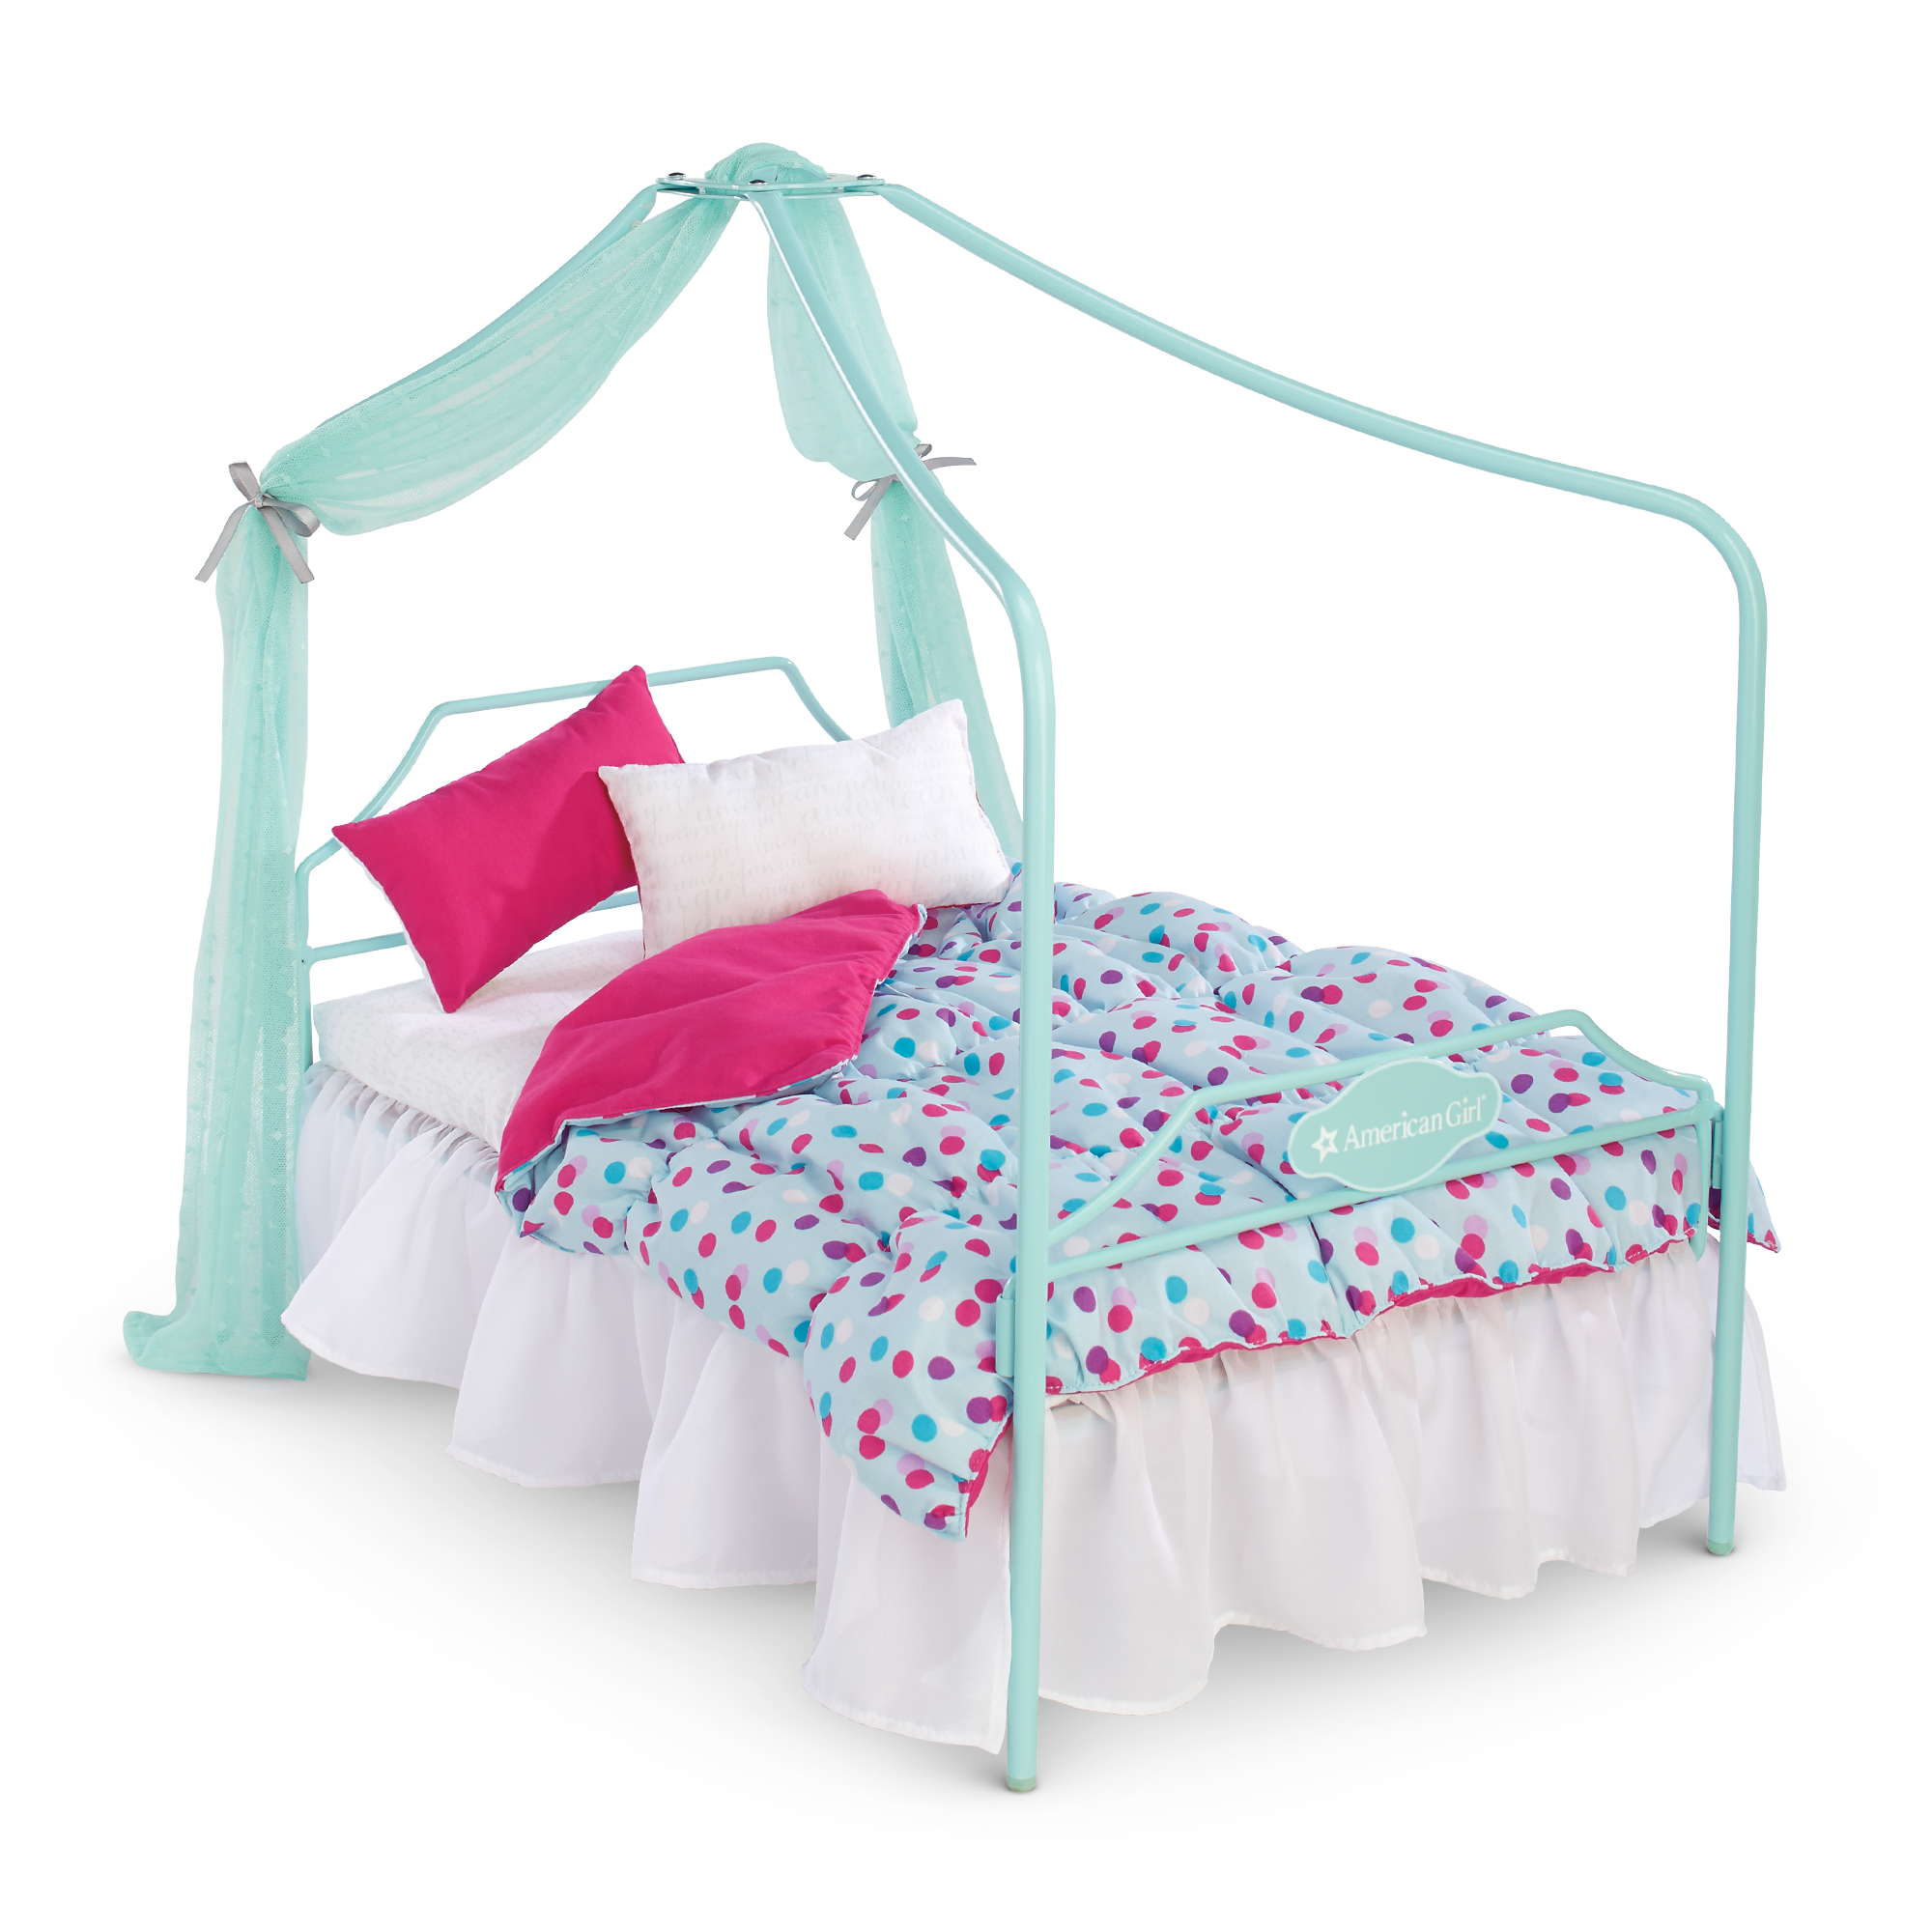 Canopy Bed and Bedding Set | American Girl Wiki | FANDOM powered by ...